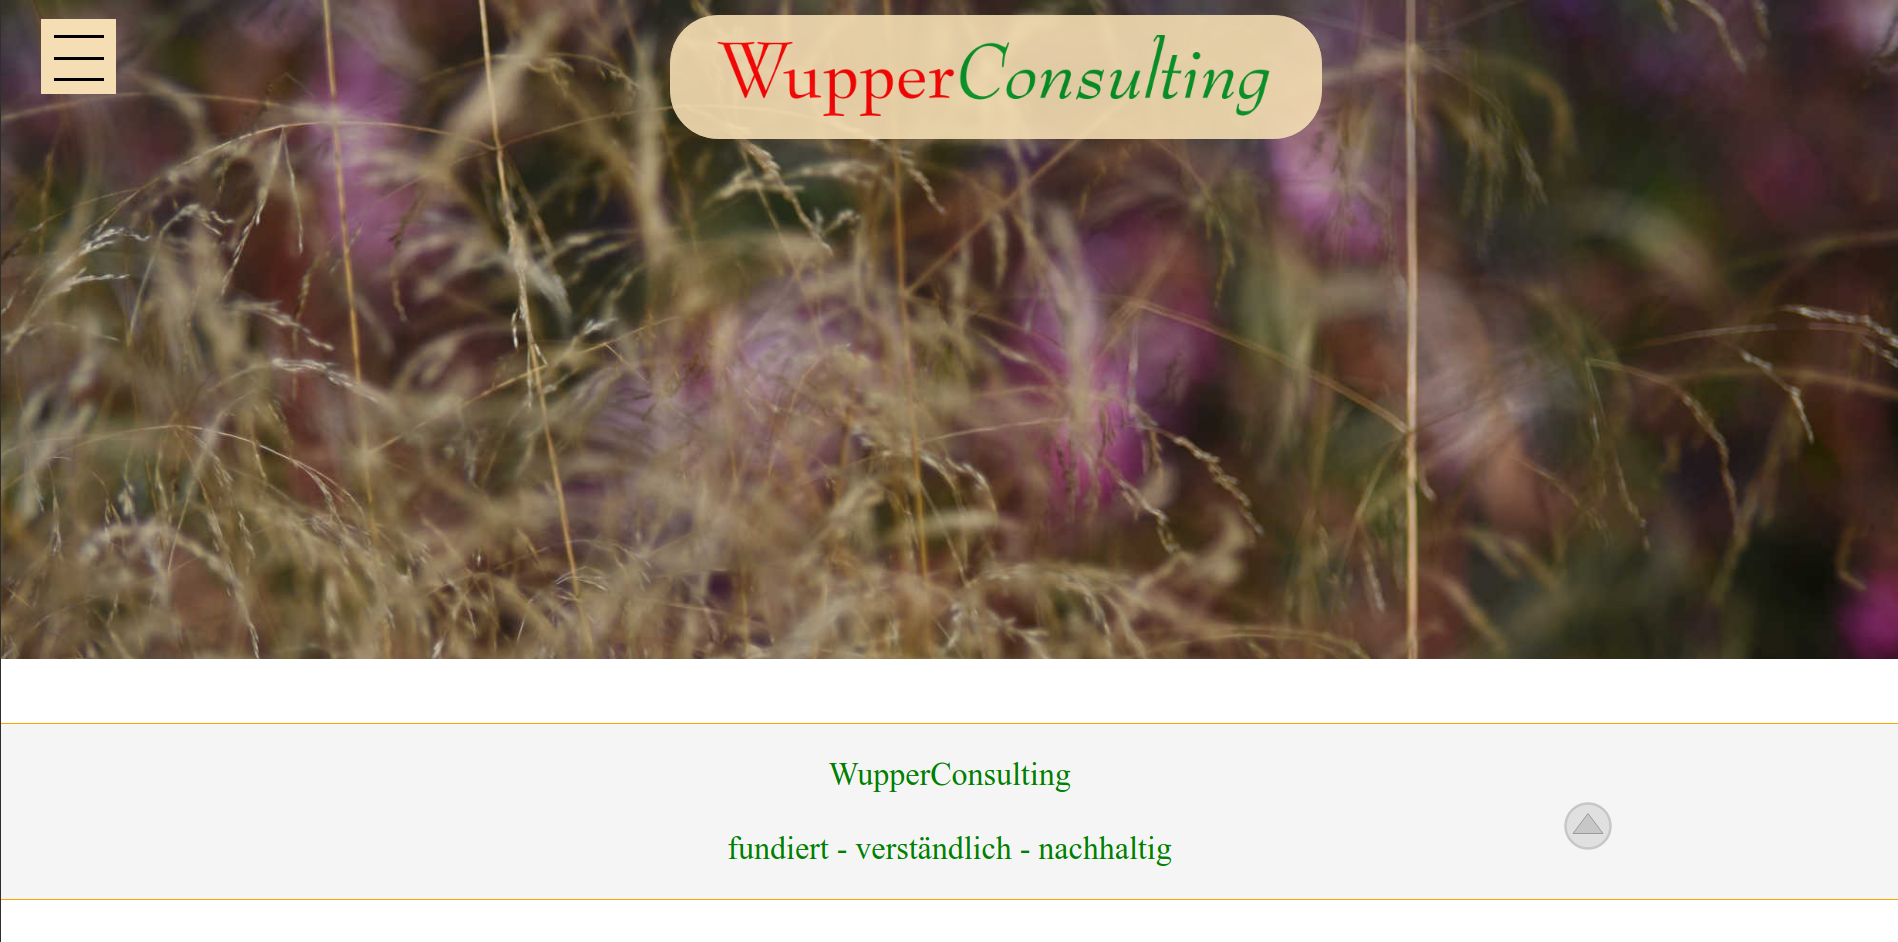 WupperConsulting 2020